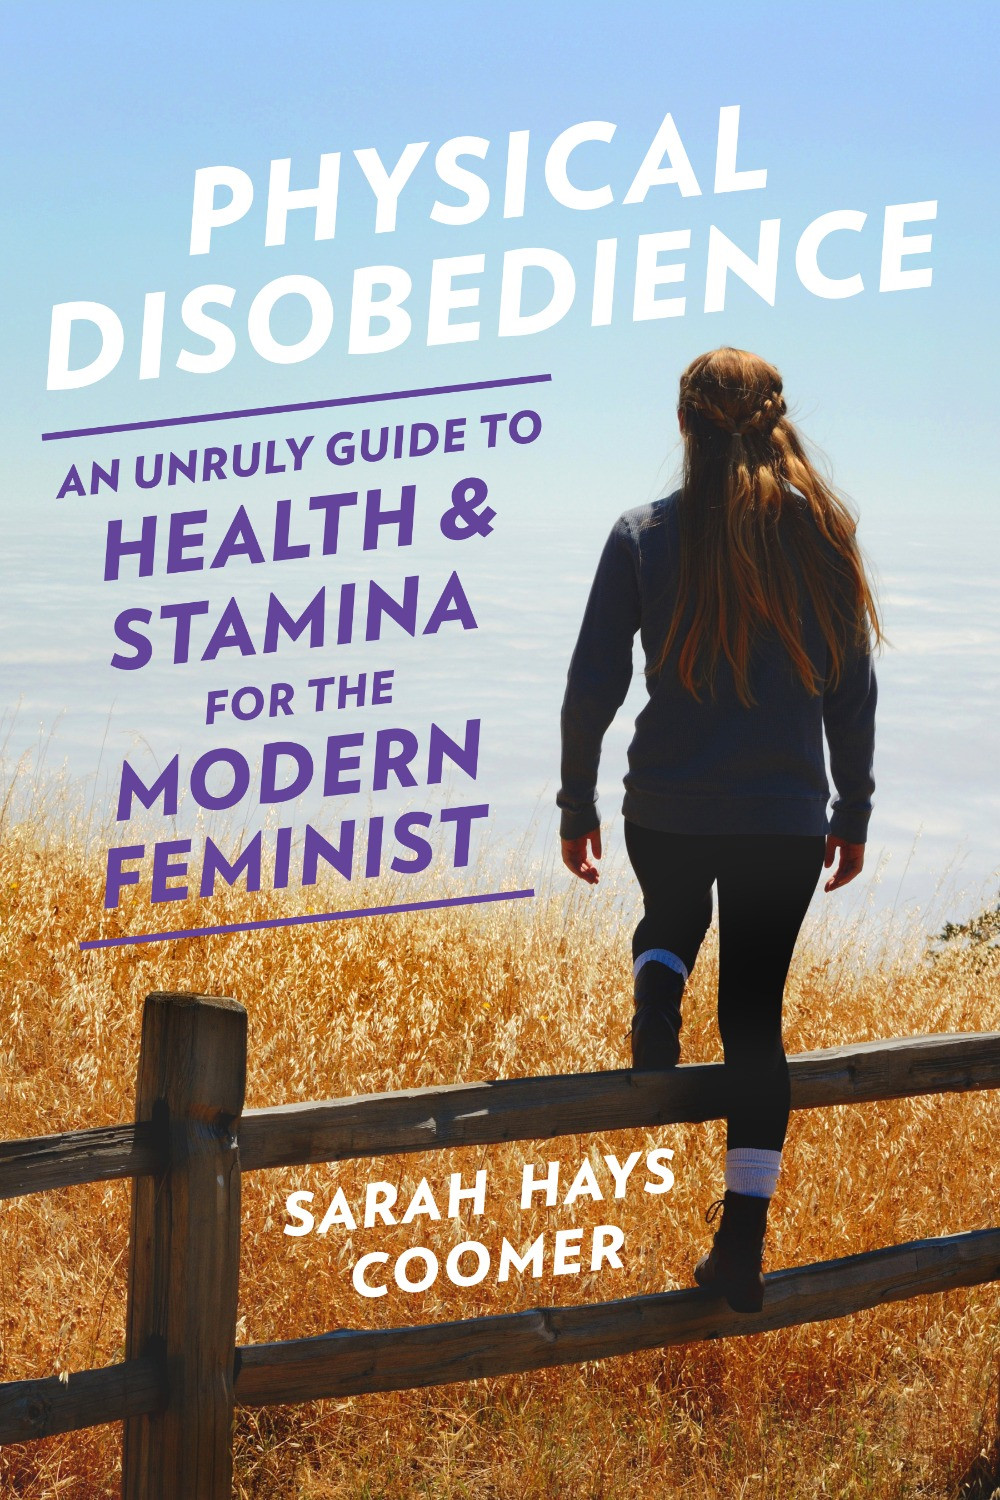 Physical Disobedience by Sarah Hays Coomer